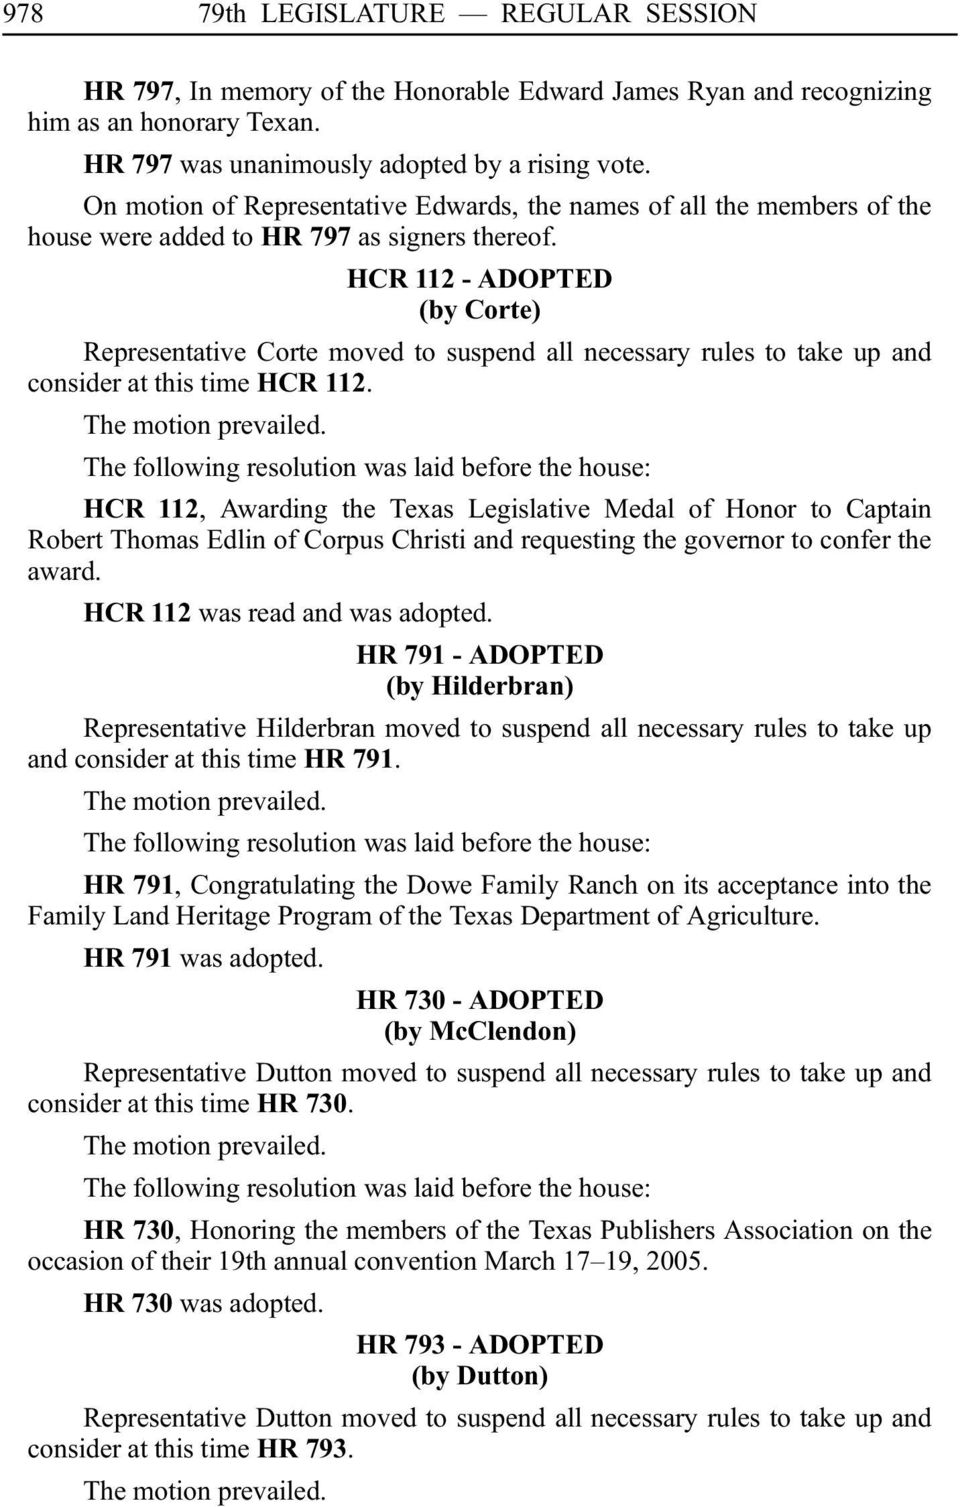 HCR 112 - ADOPTED (by Corte) Representative Corte moved to suspend all necessary rules to take up and consider at this time HCRi112. The motion prevailed.